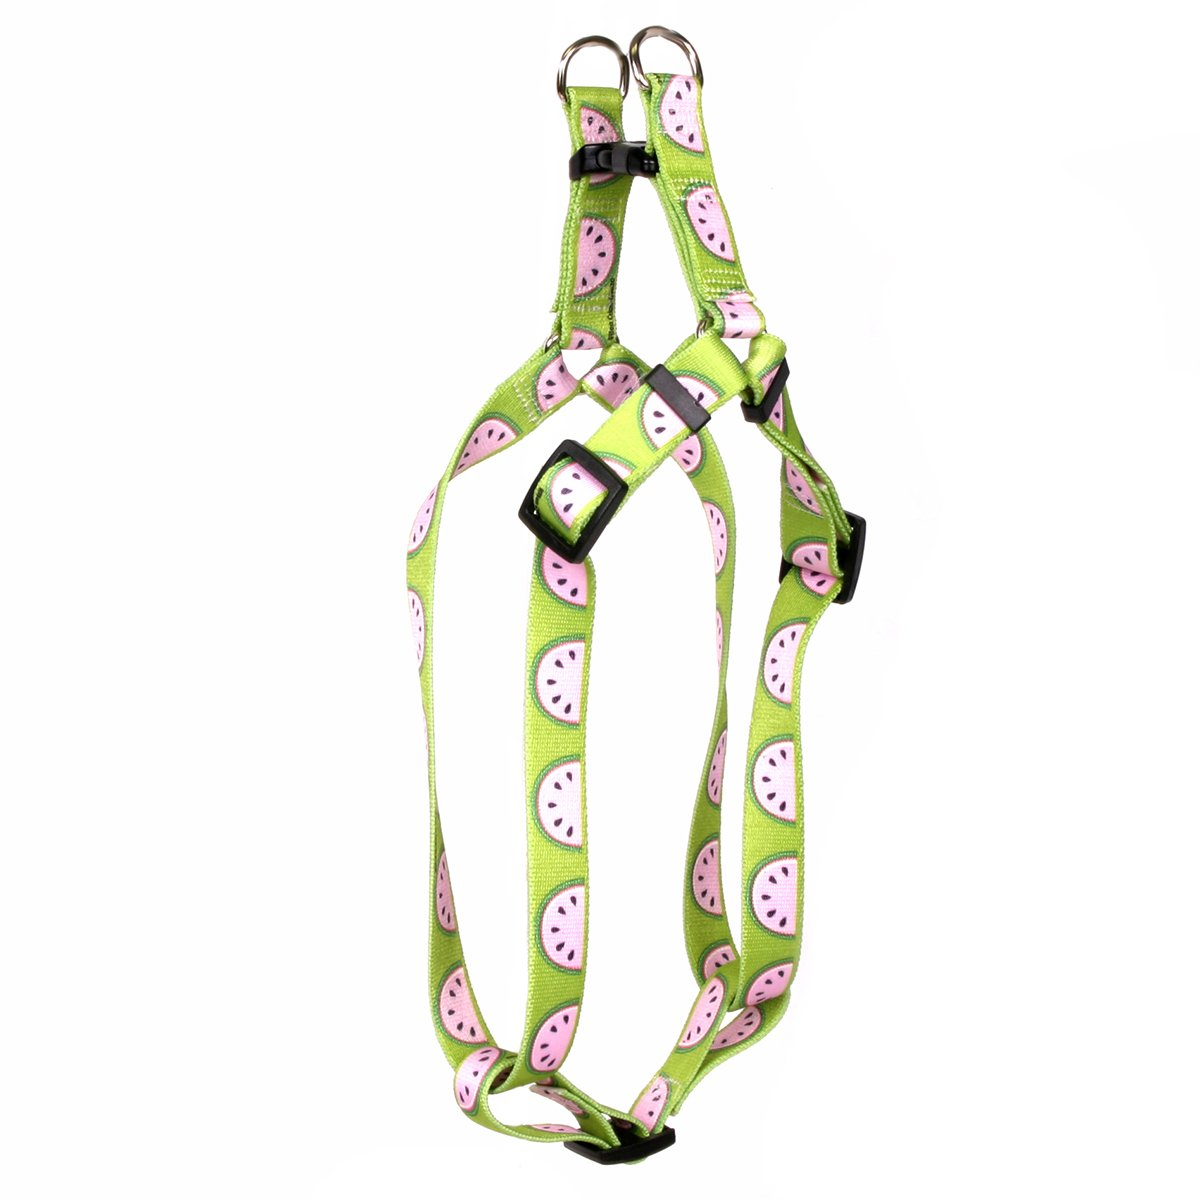 Yellow Dog Design Wonderful Watermelons Step-in Dog Harness-Small-3/4 and fits Chest 9 to 15'' by Yellow Dog Design